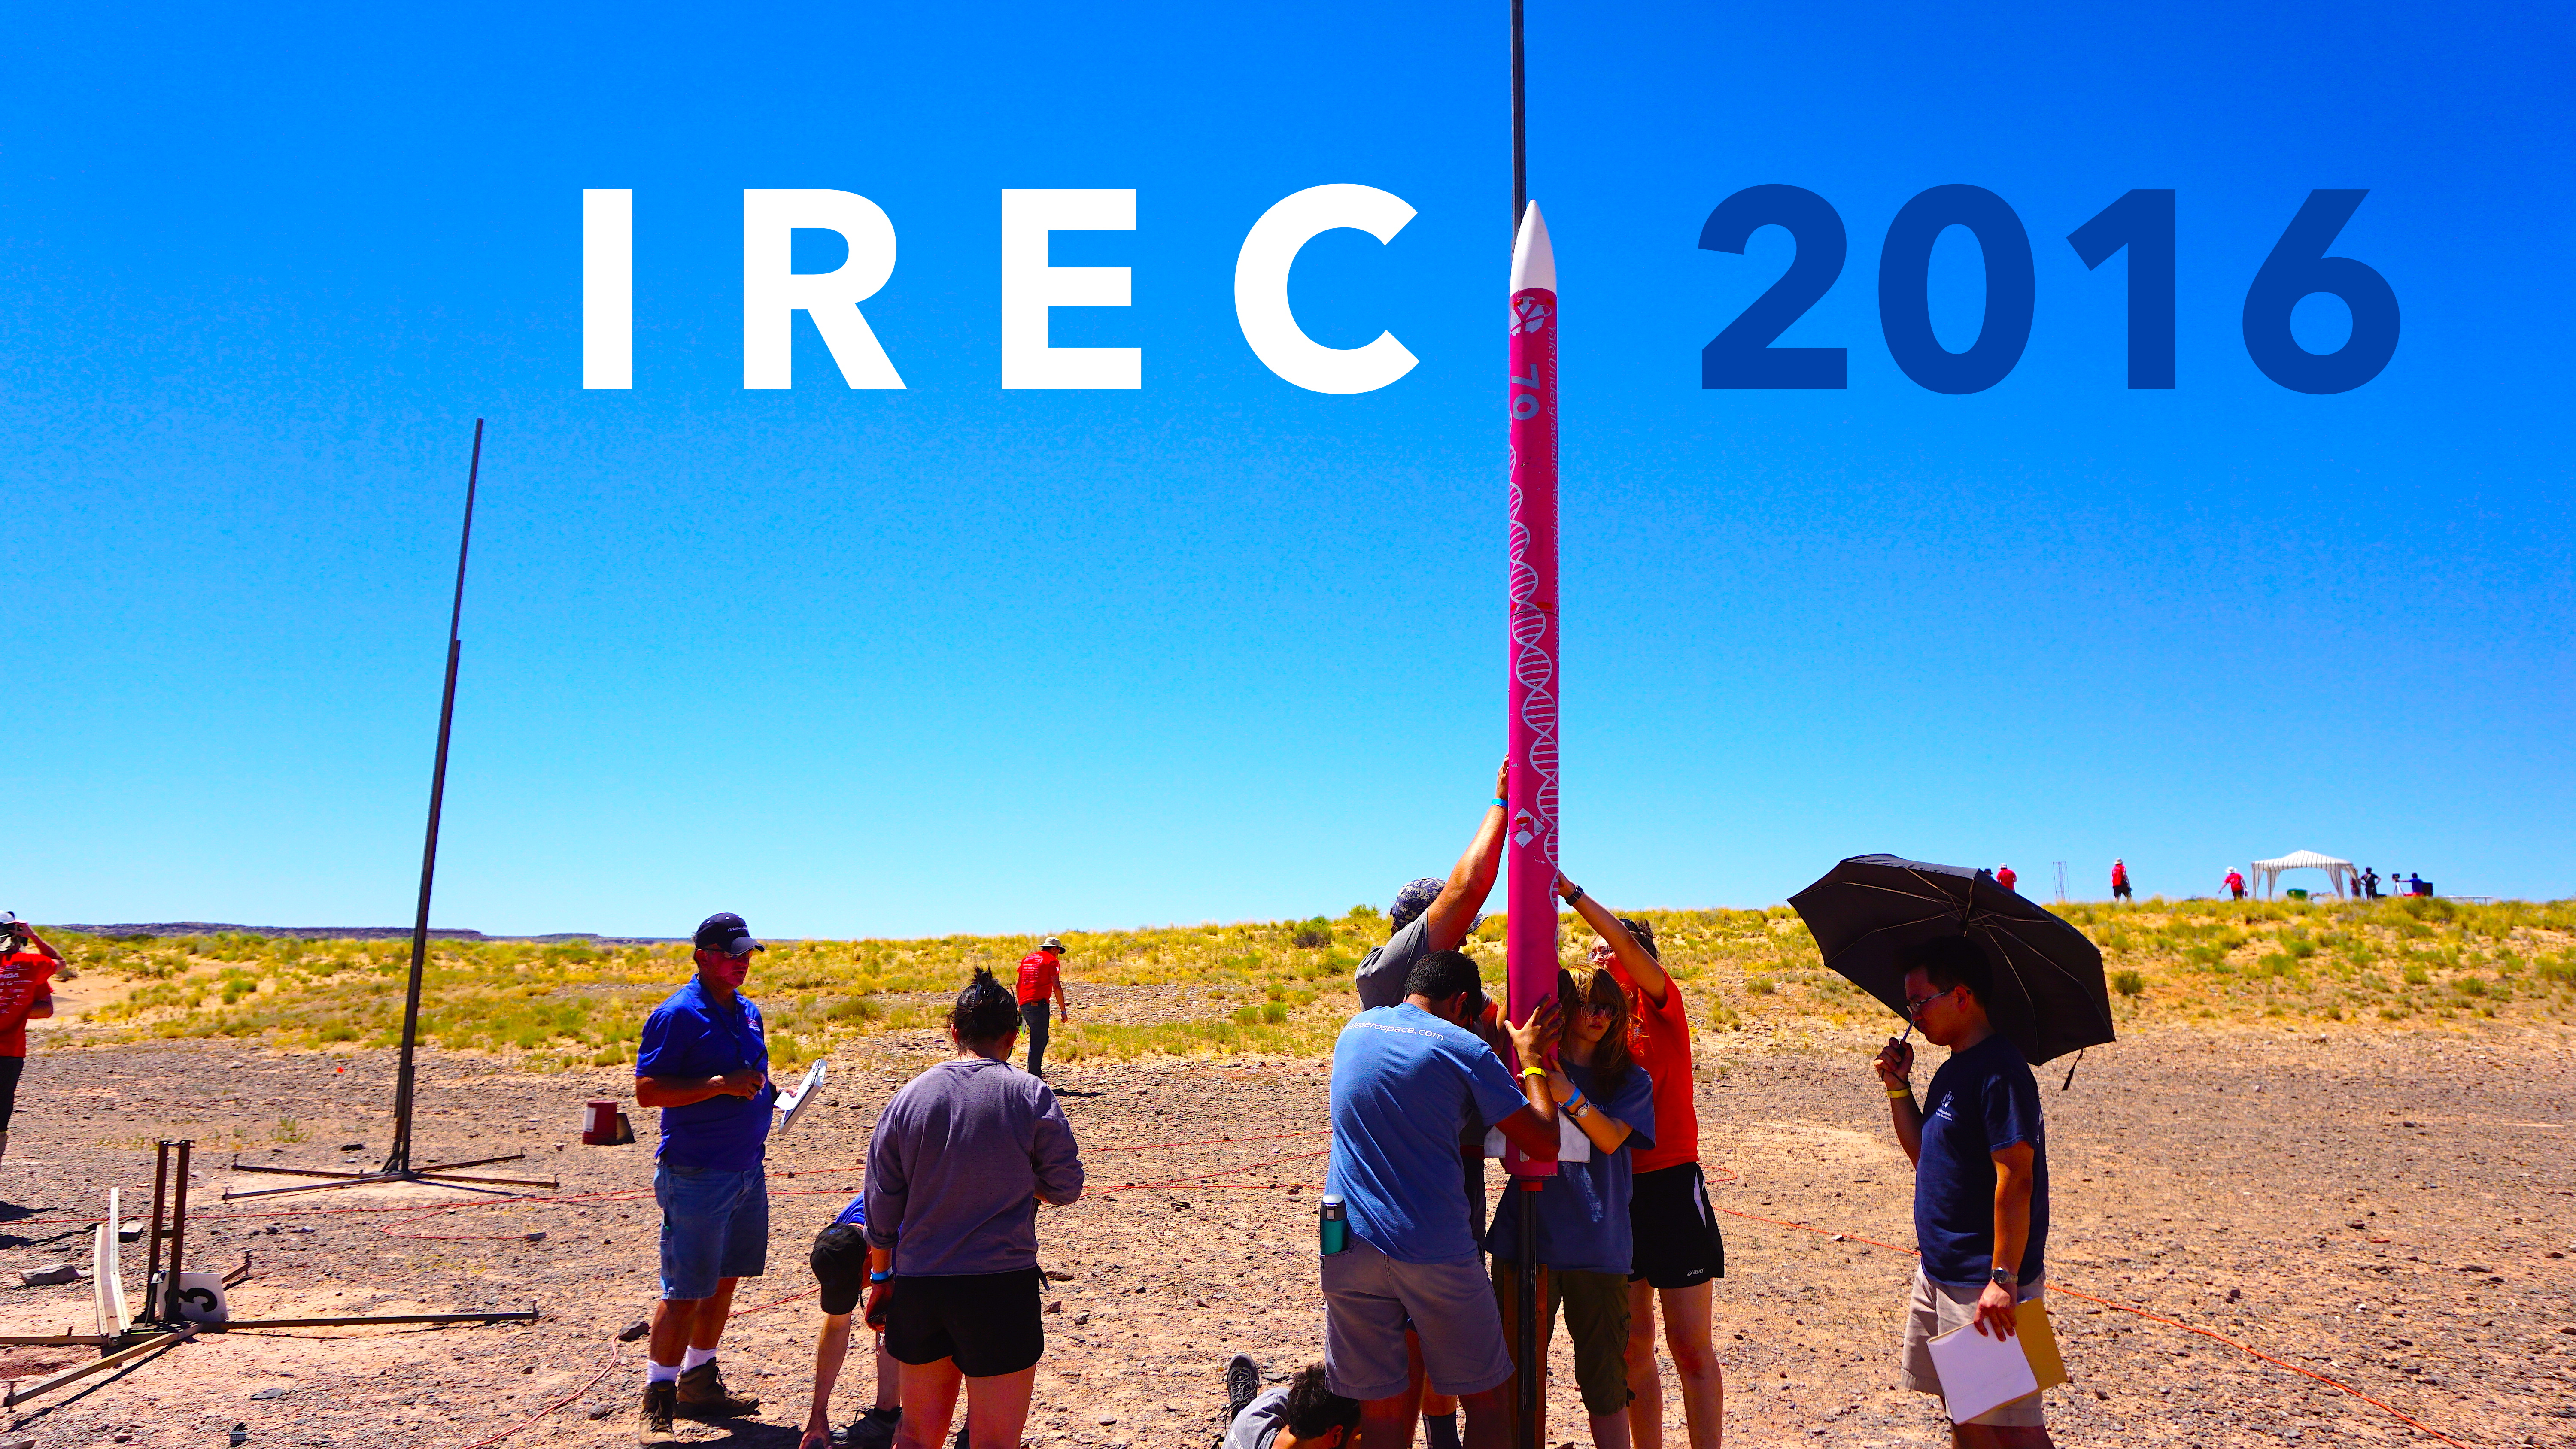 IREC2016 FRONT PAGE